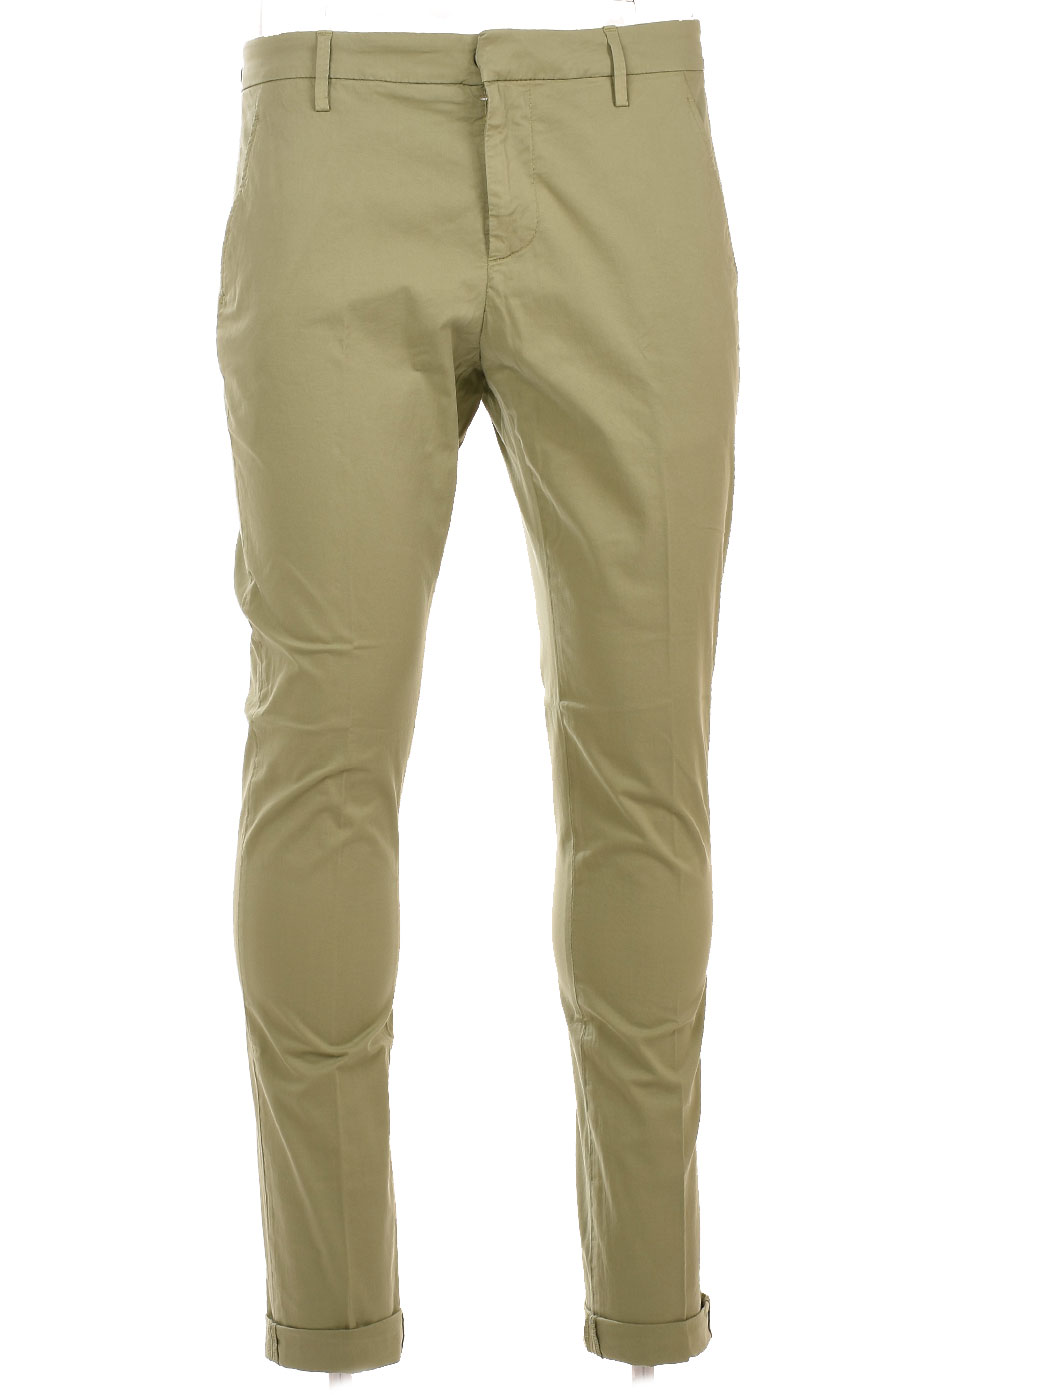 DONDUP UP235 DU606 PANTALONI